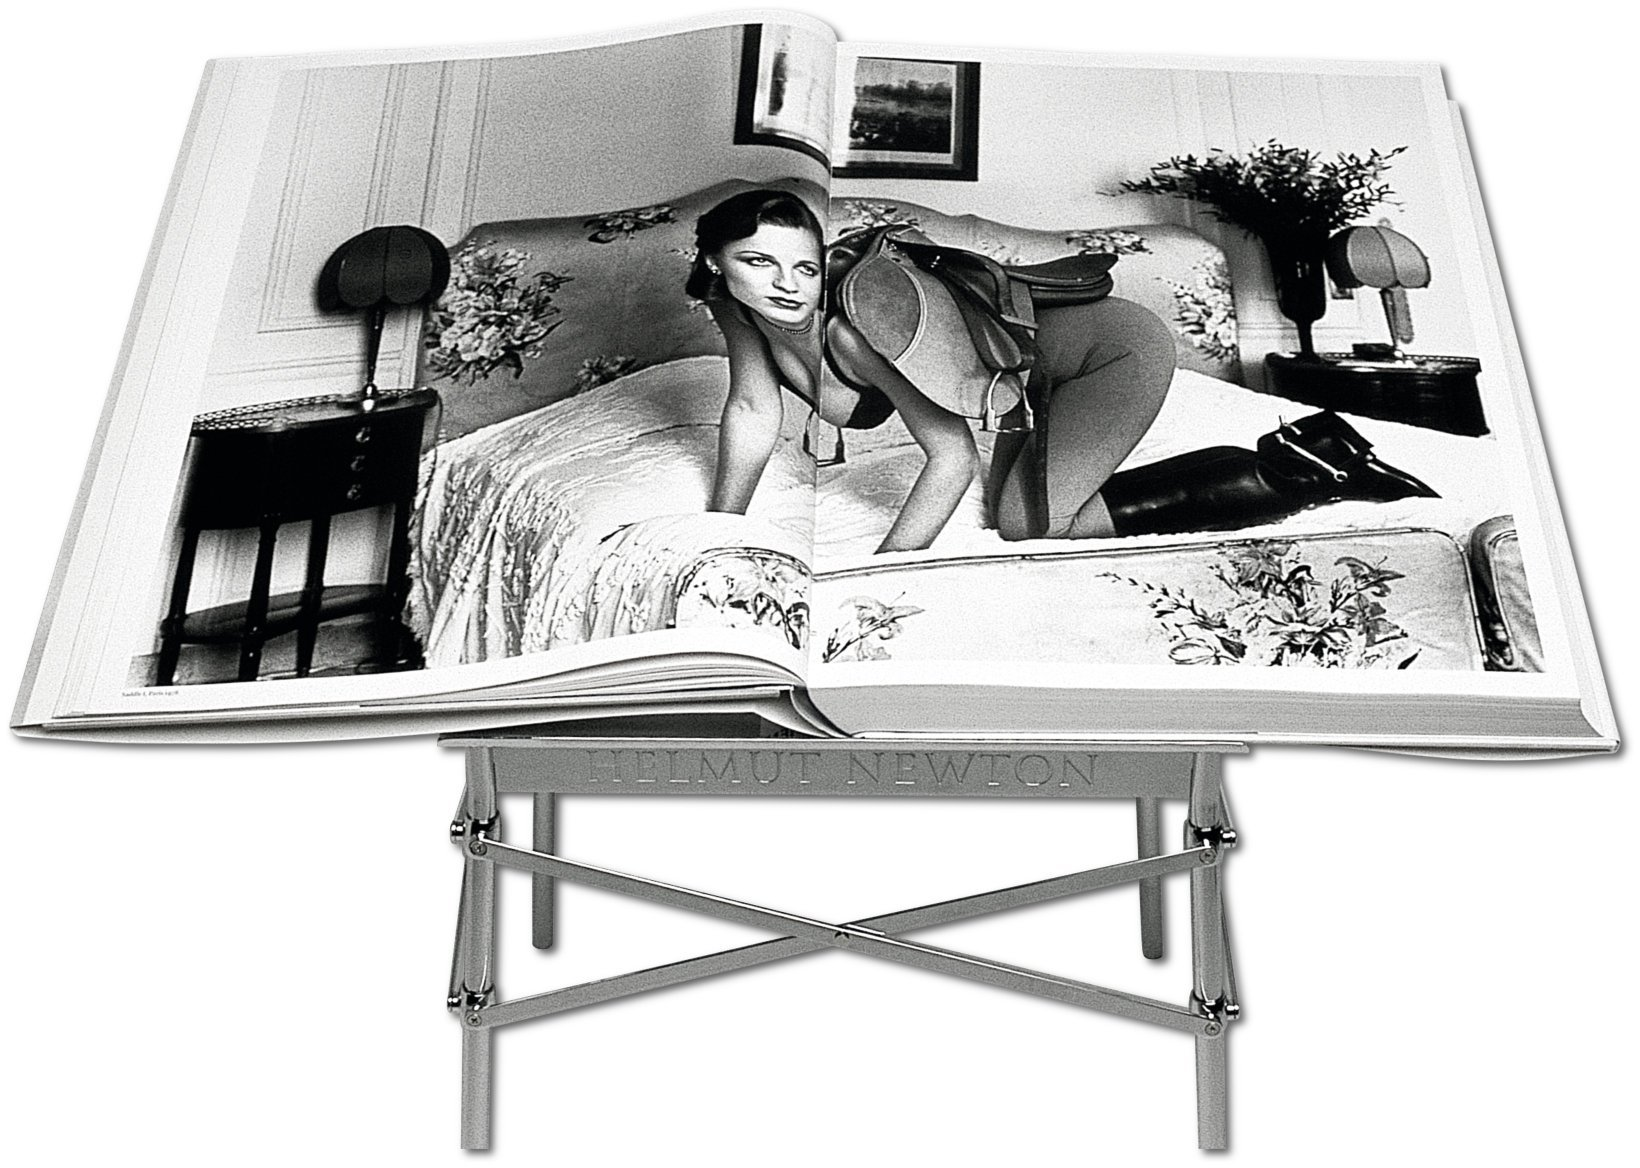 Helmut Newton: SUMO<br />Edition of 10,000<br />Helmut Newton, Philippe Starck<br />Hardcover with book stand, <br />50 x 70 cm, 464 pages<br />TASCHEN